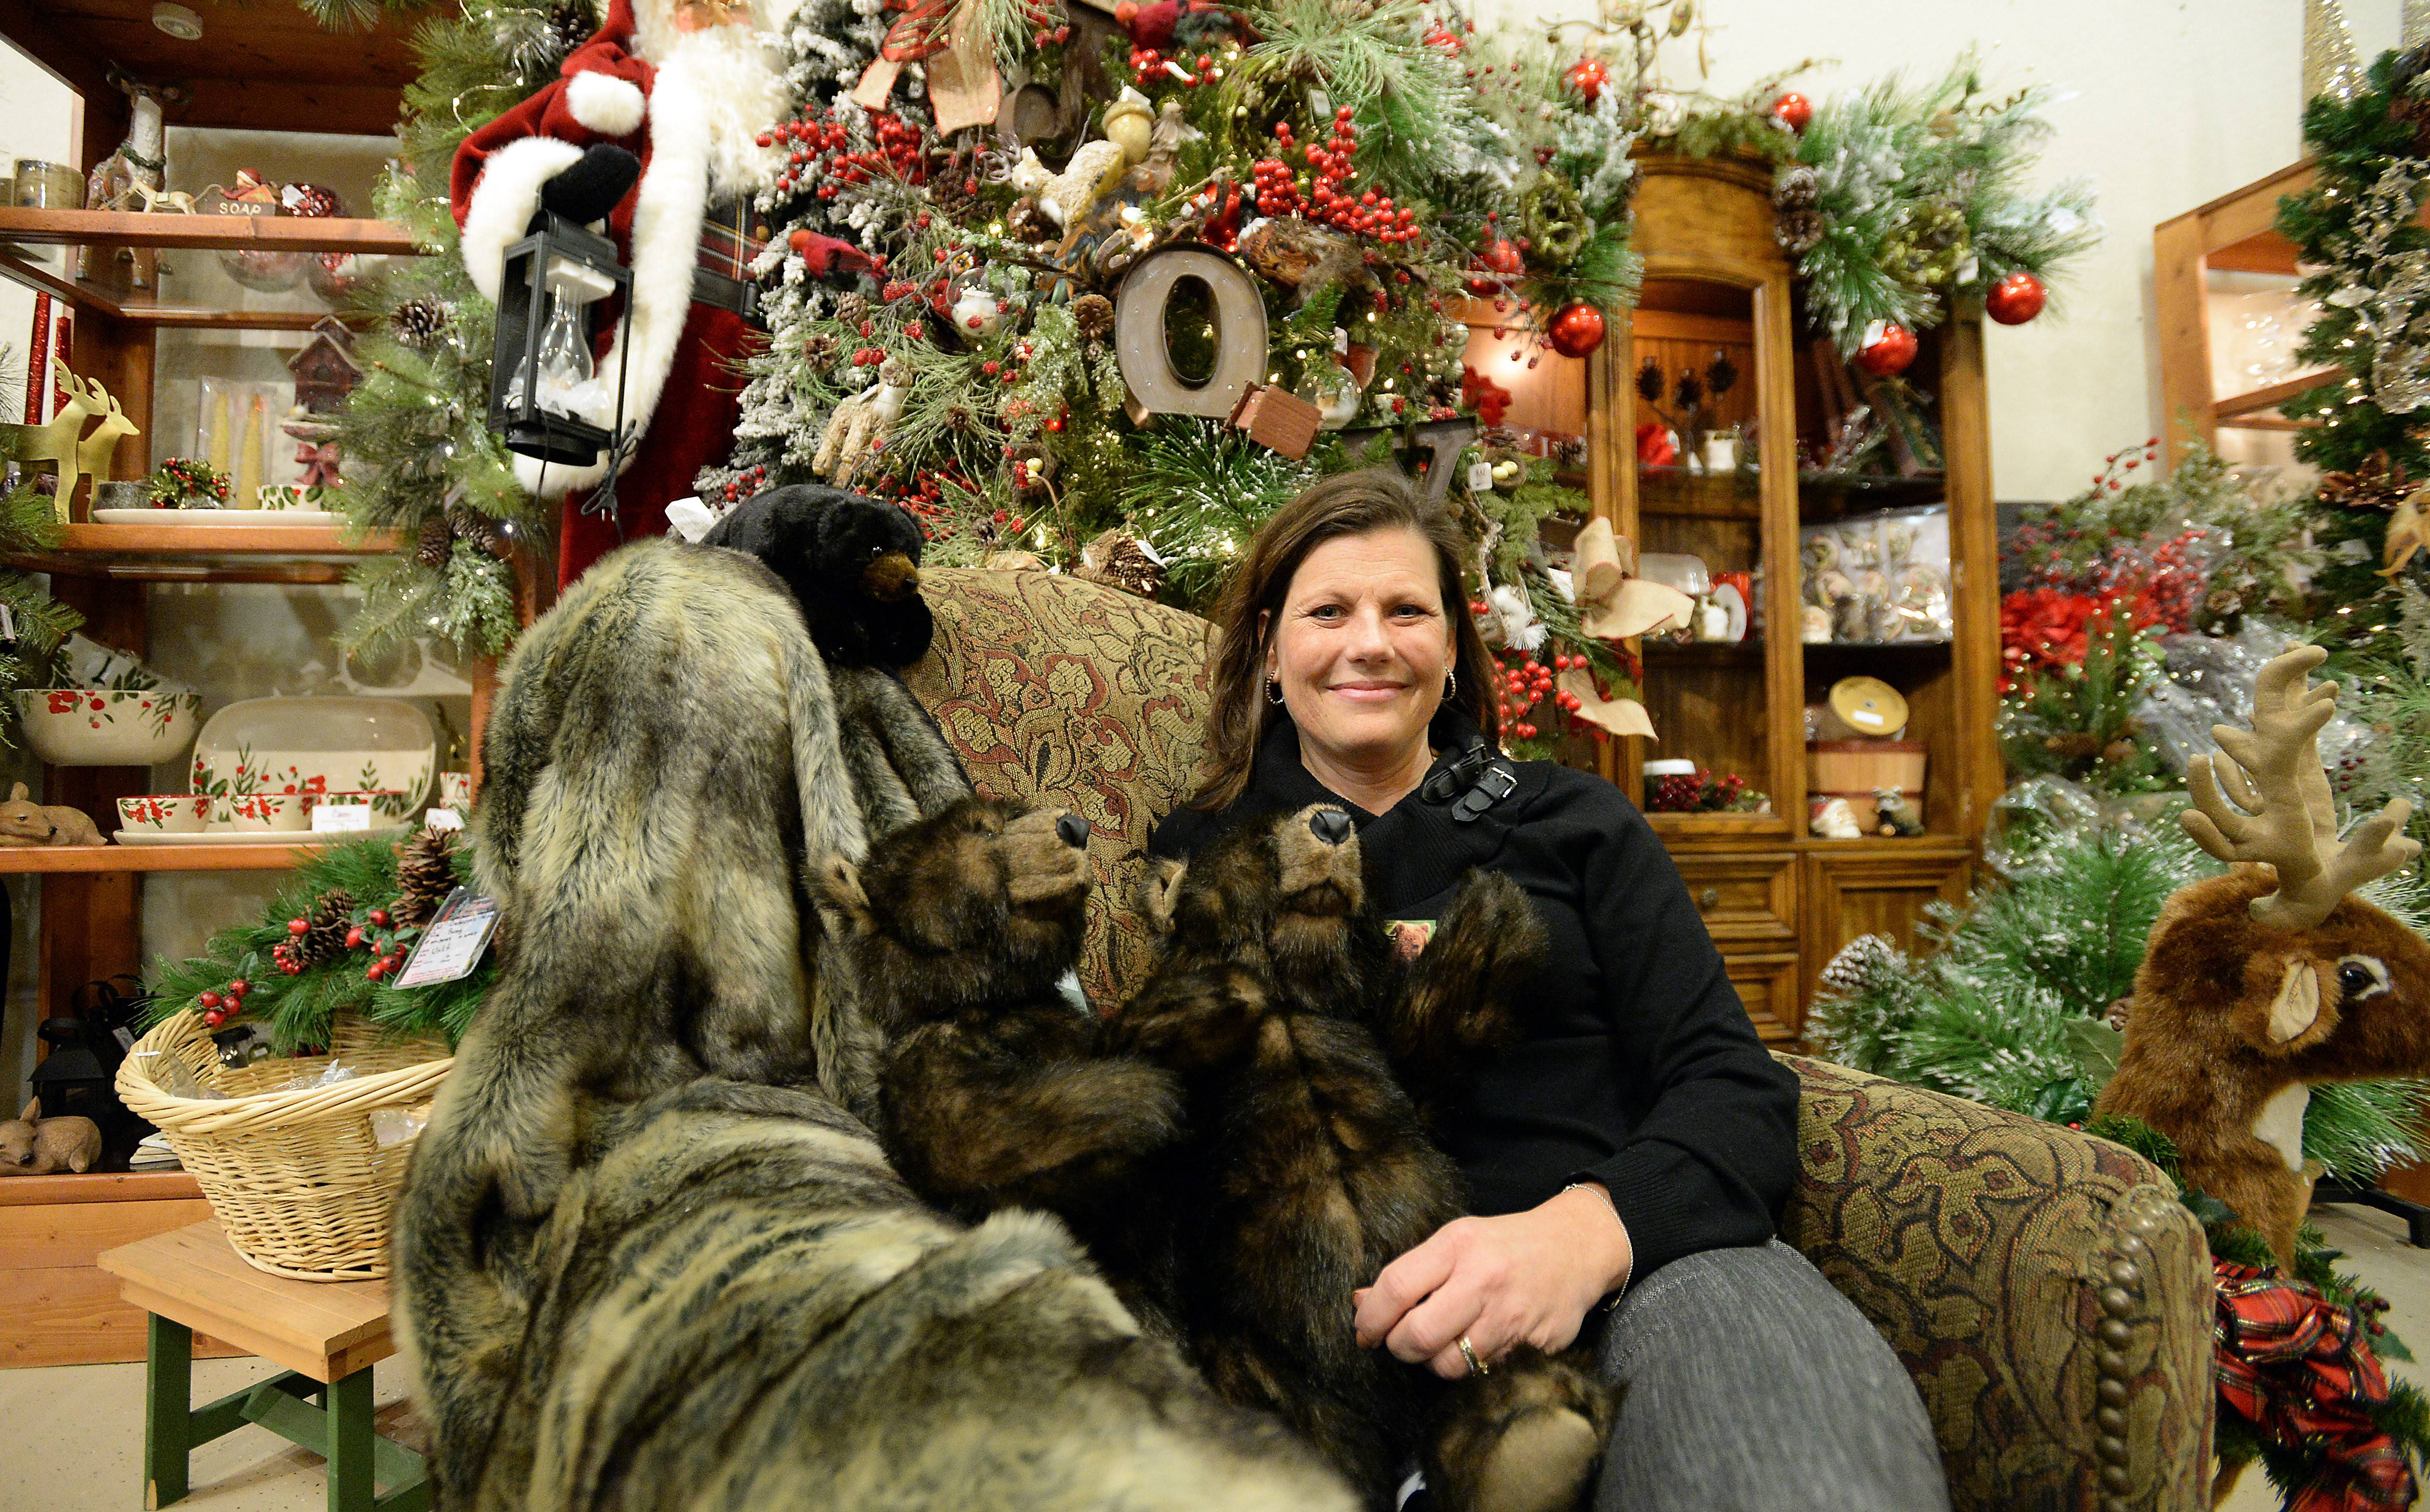 Owner Laurie Kane of Treetime Christmas Creations in Lake Barrington hopes to make visits to her store an annual tradition for many suburban families.